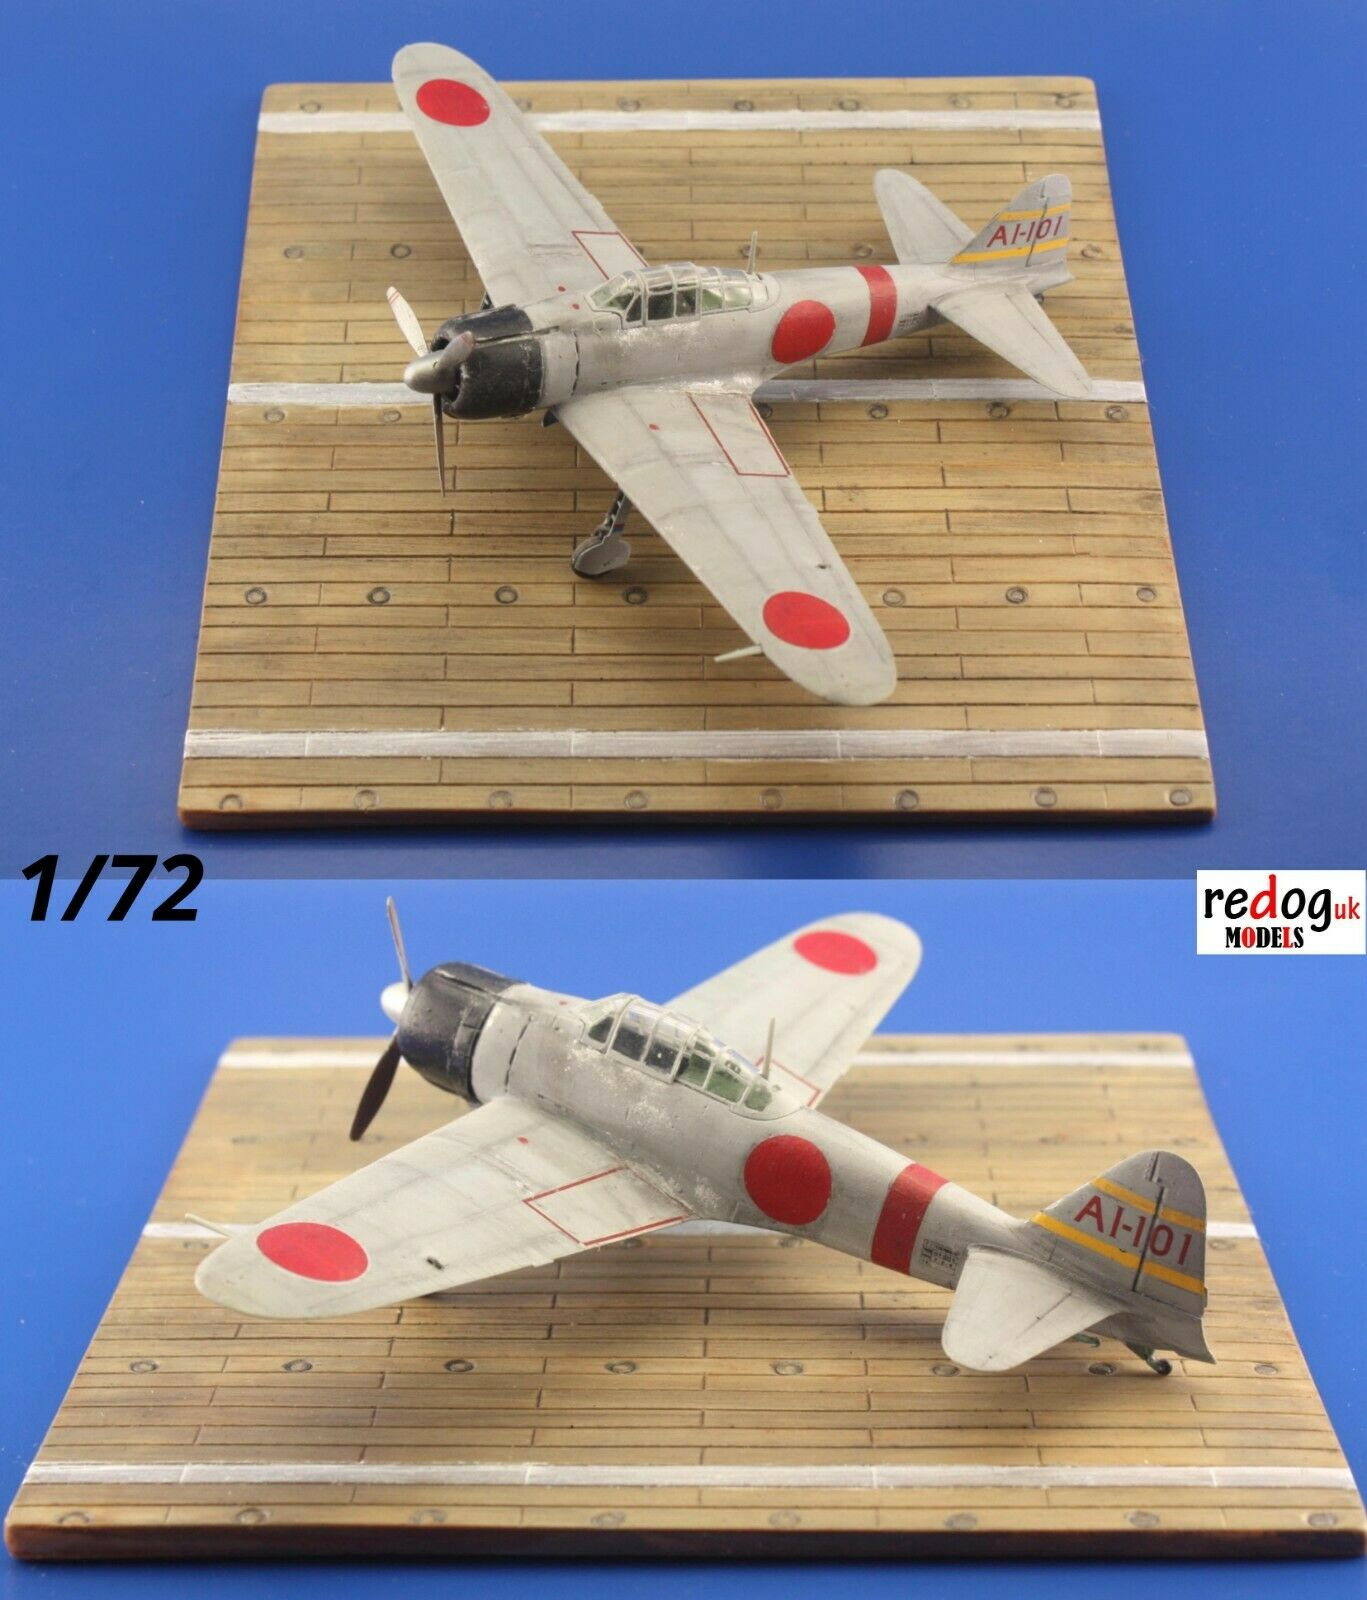 1/72 Japanese Carrier Deck Scale Model Aeroplane Display Base /D27 - redoguk